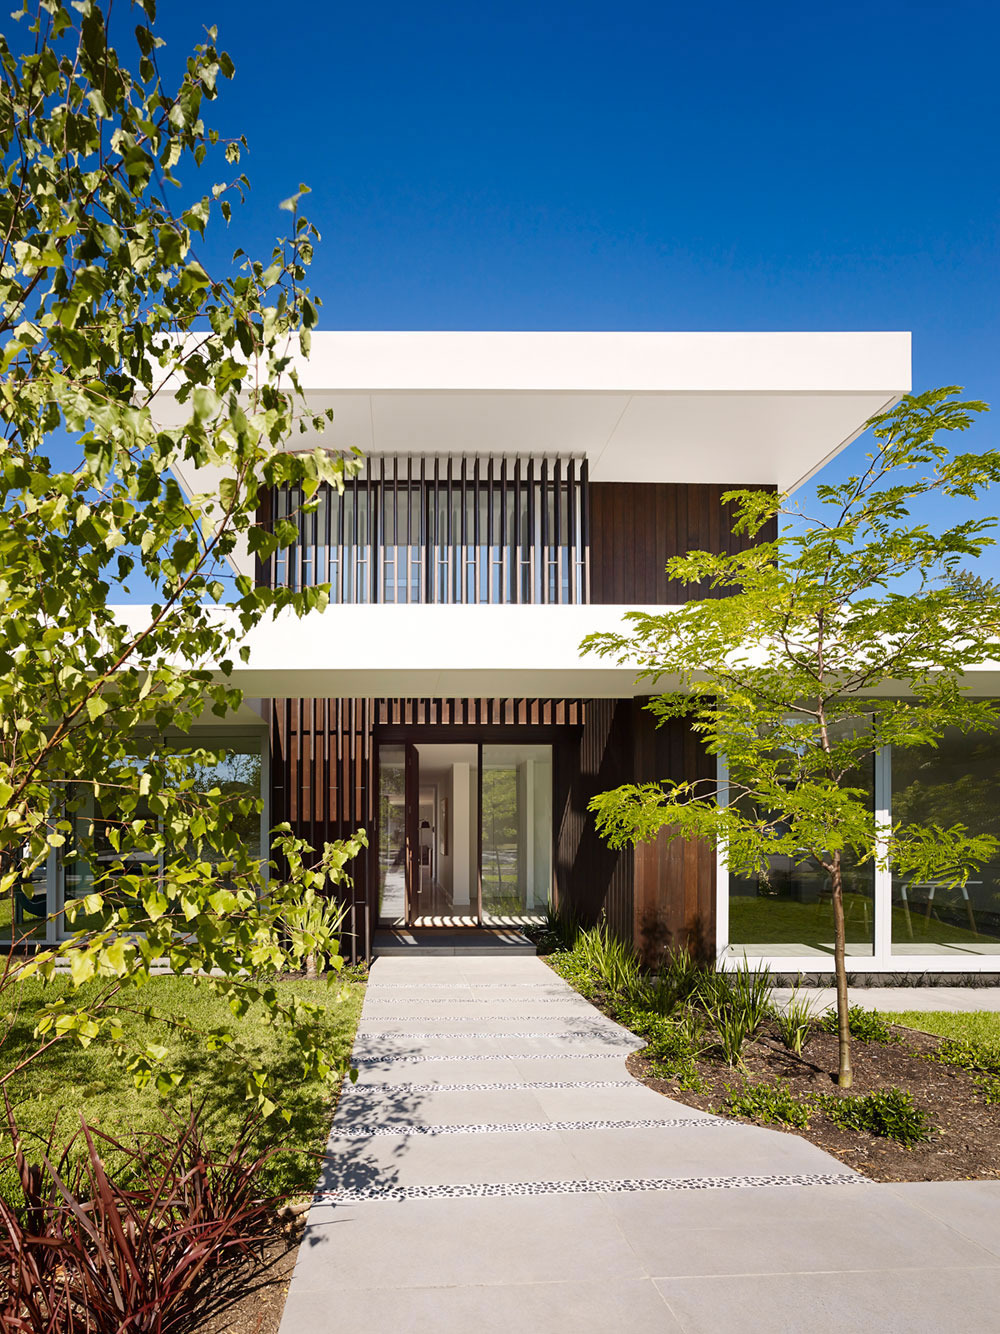 Pictures Of Beautiful Houses Inside and Outside Beautiful Modern House that is Beautiful Both the Outside and the